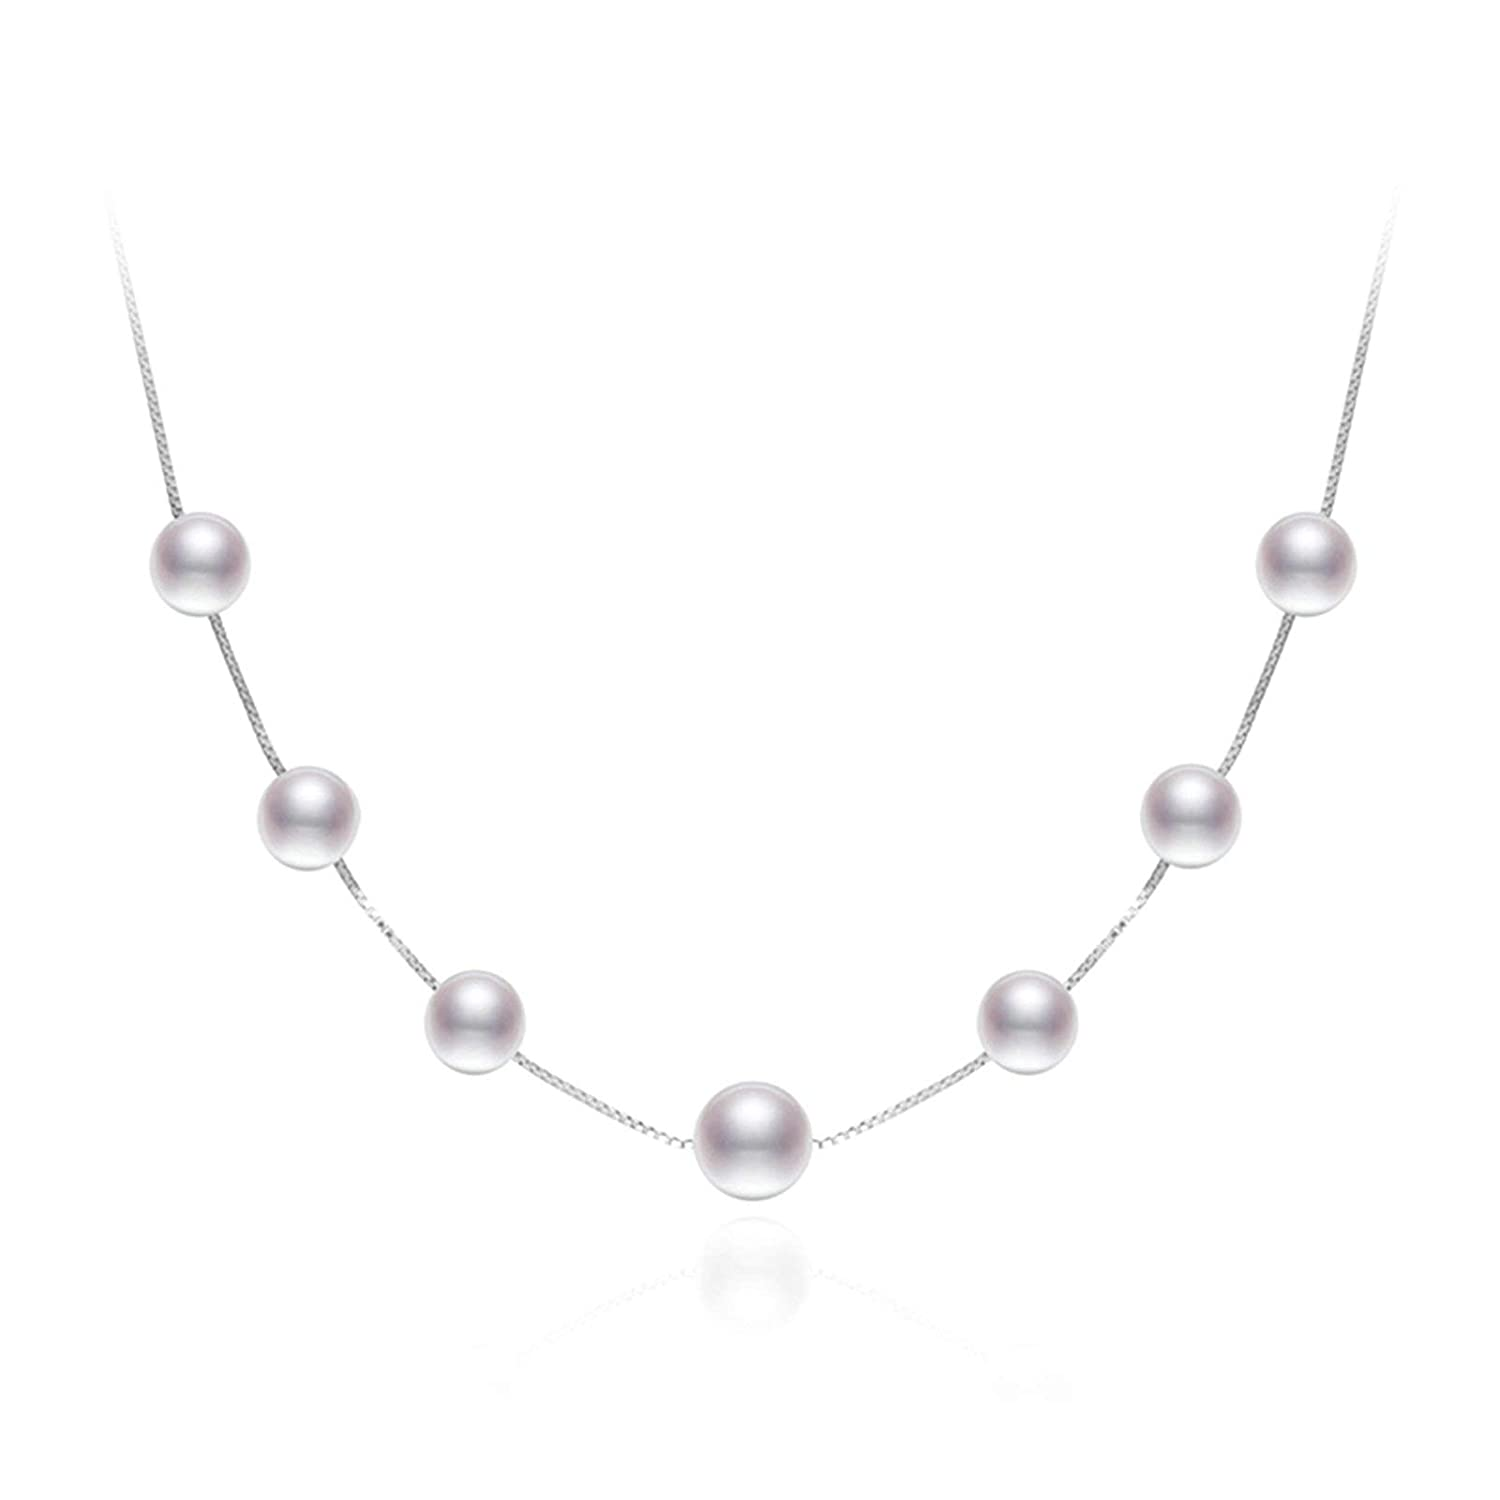 Aooaz Silver Material Necklace Women Girls Ball Beads Pendant Necklaces White Wedding 40CM